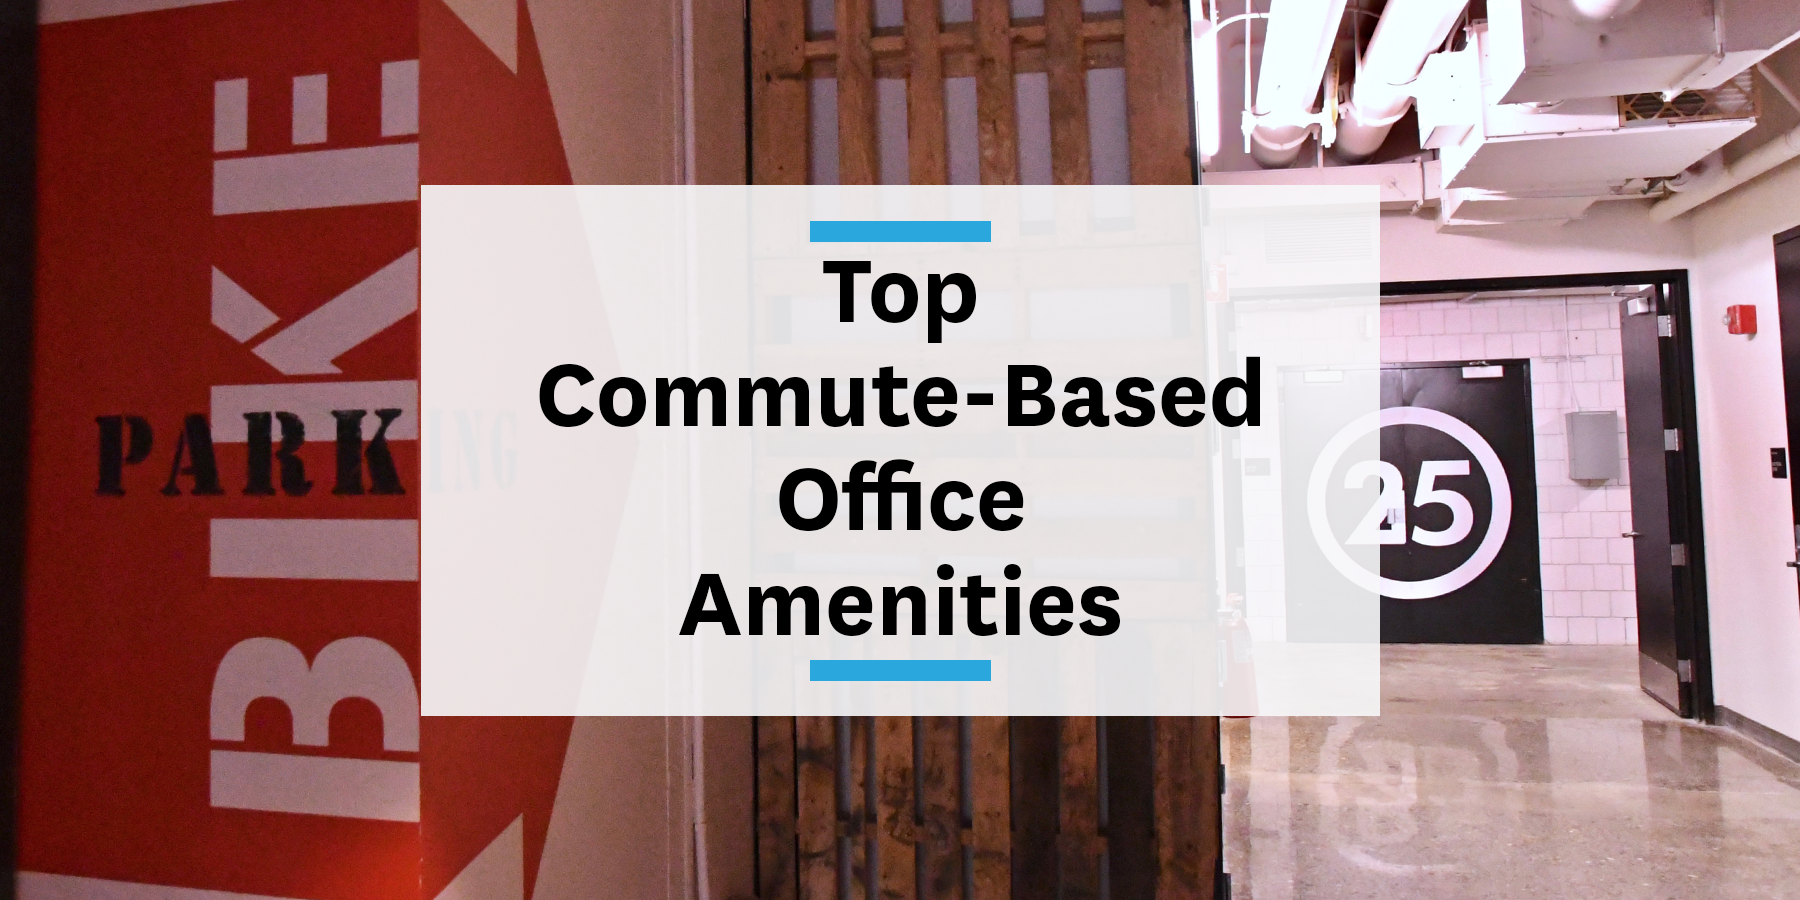 Feature image for top commute-based office amenities